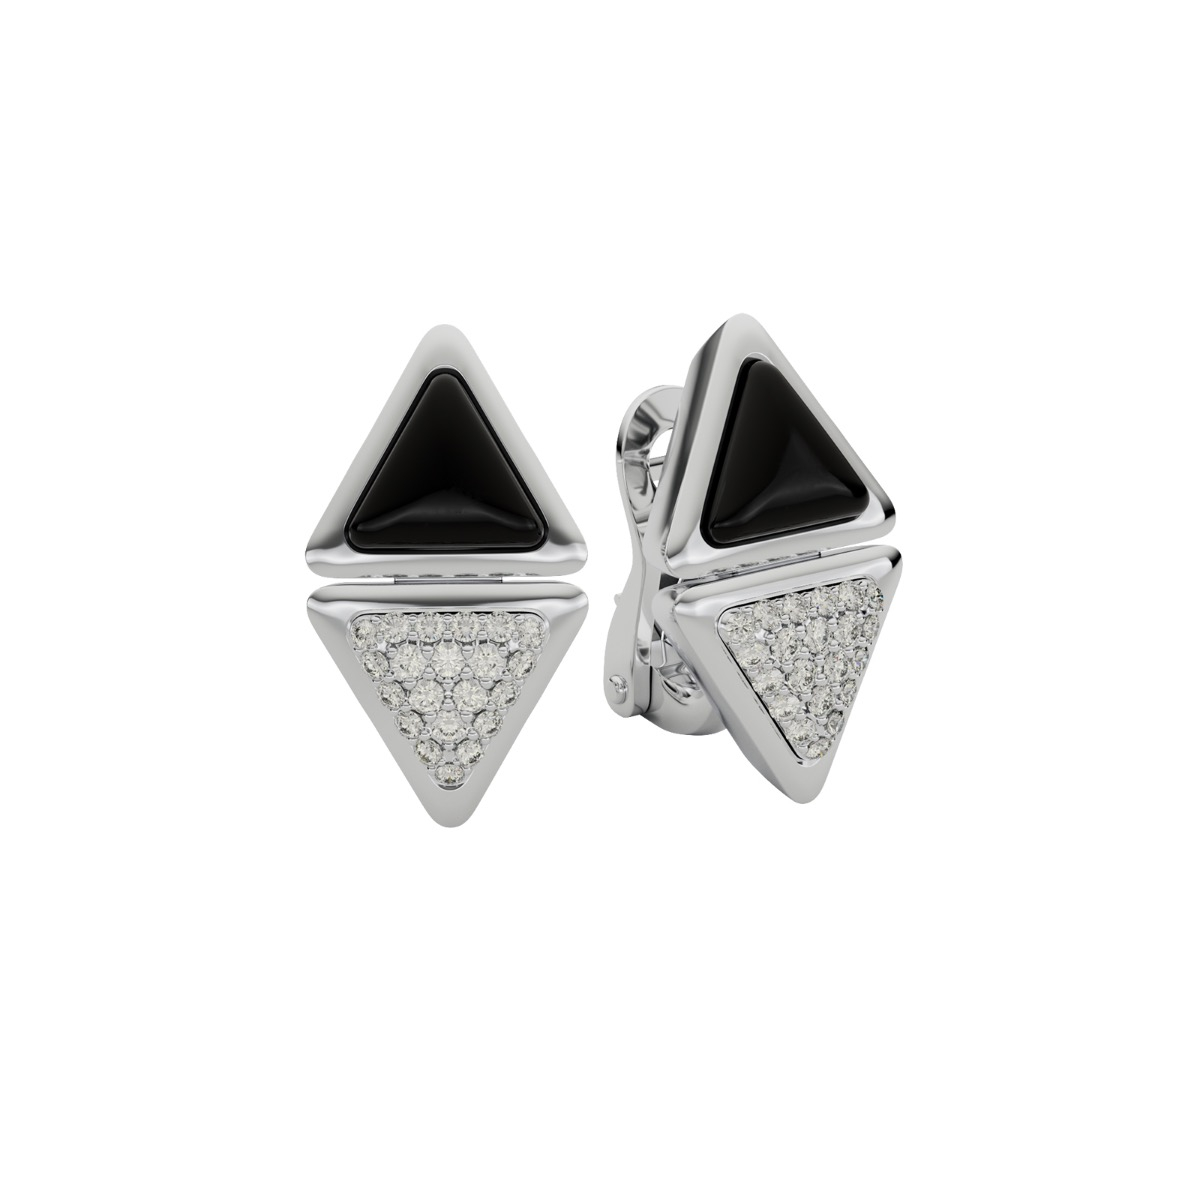 Earrings Short Mirror Exquisite White Gold Onix and Diamonds